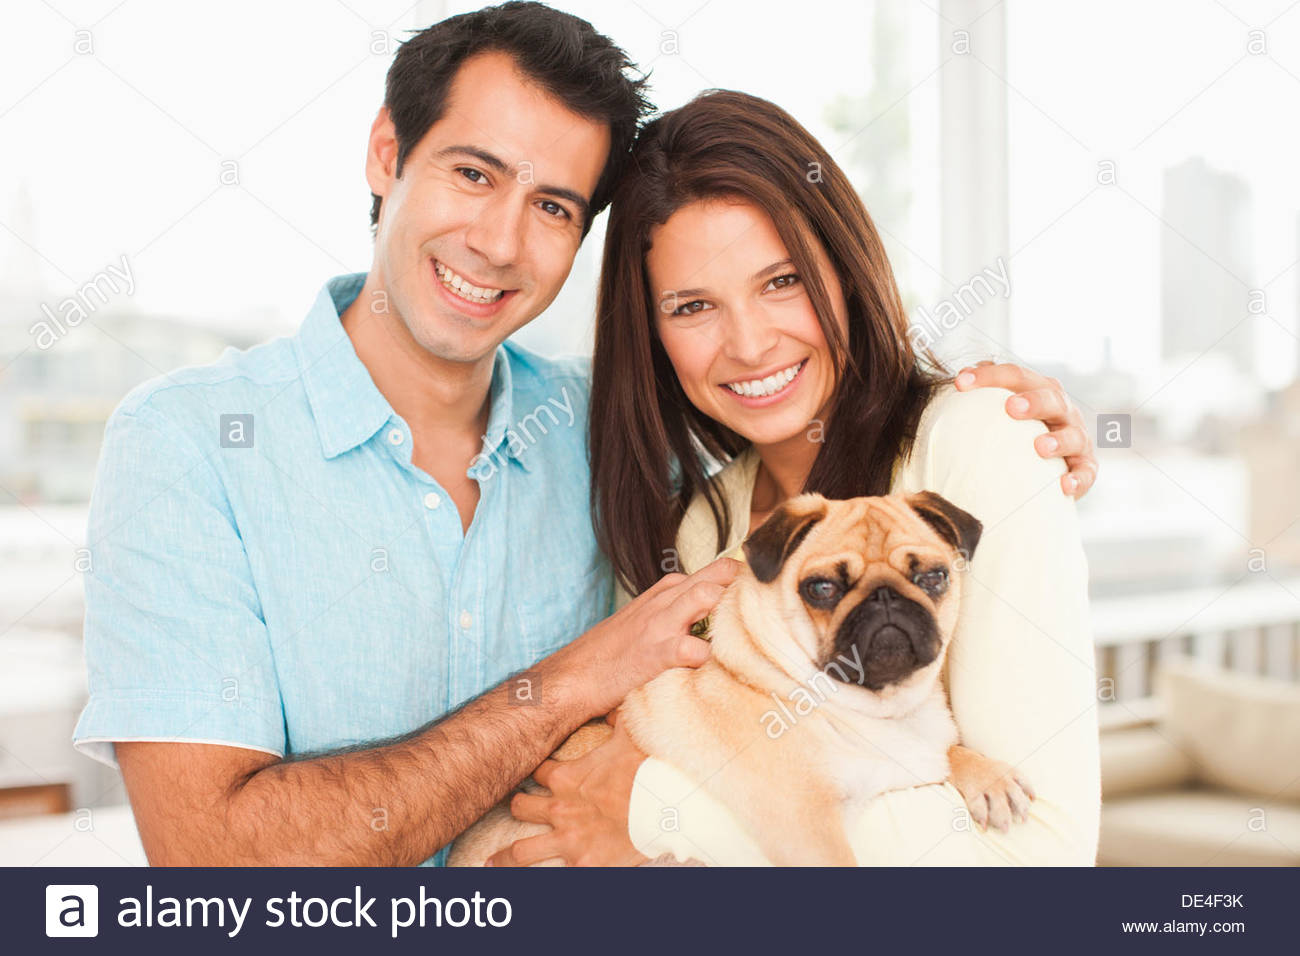 Smiling couple with pug - Stock Image